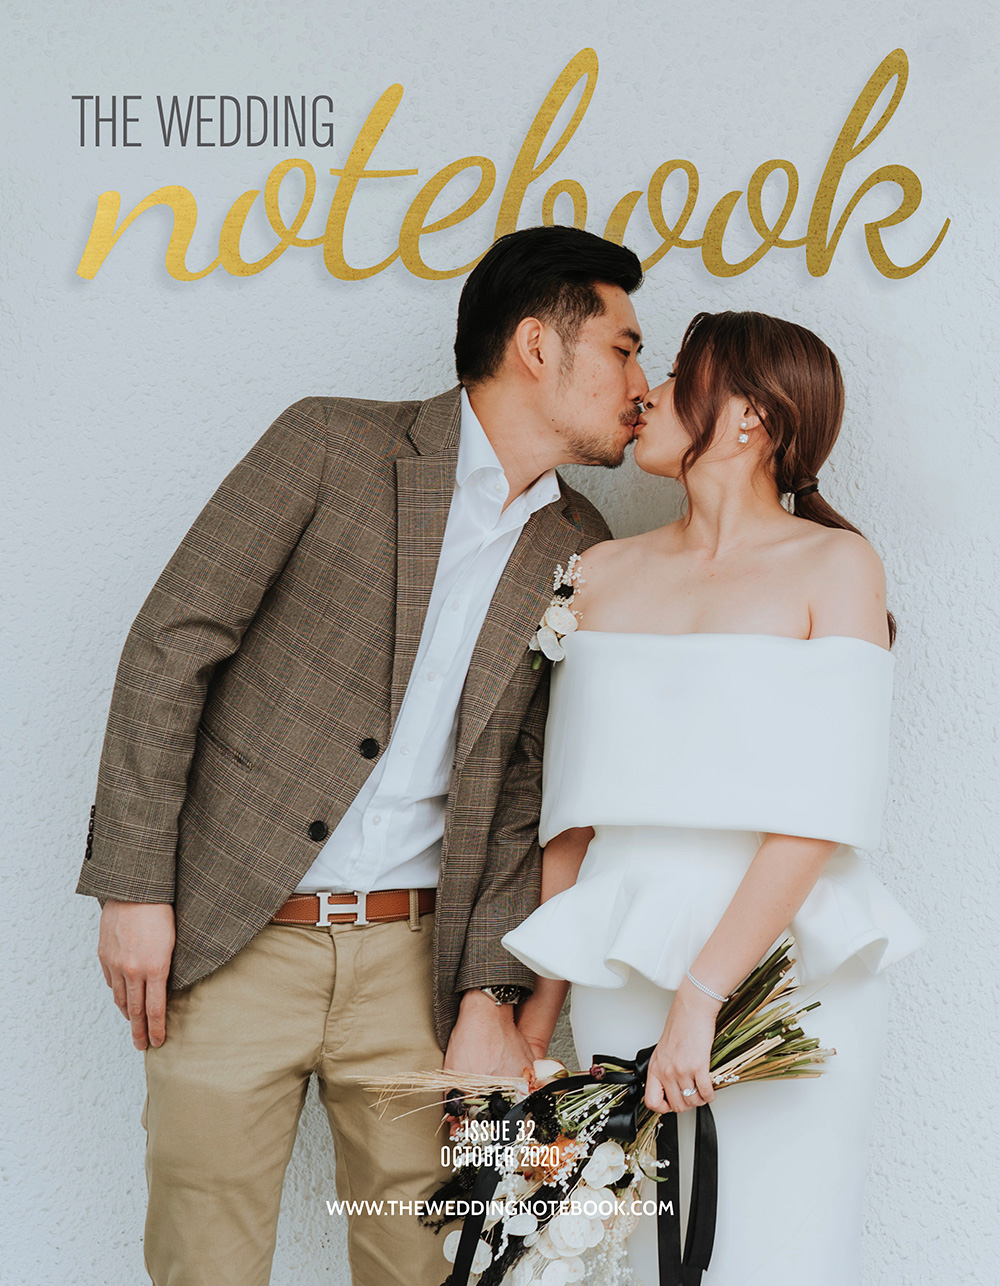 The Wedding Notebook October issue. www.theweddingnotebook.com